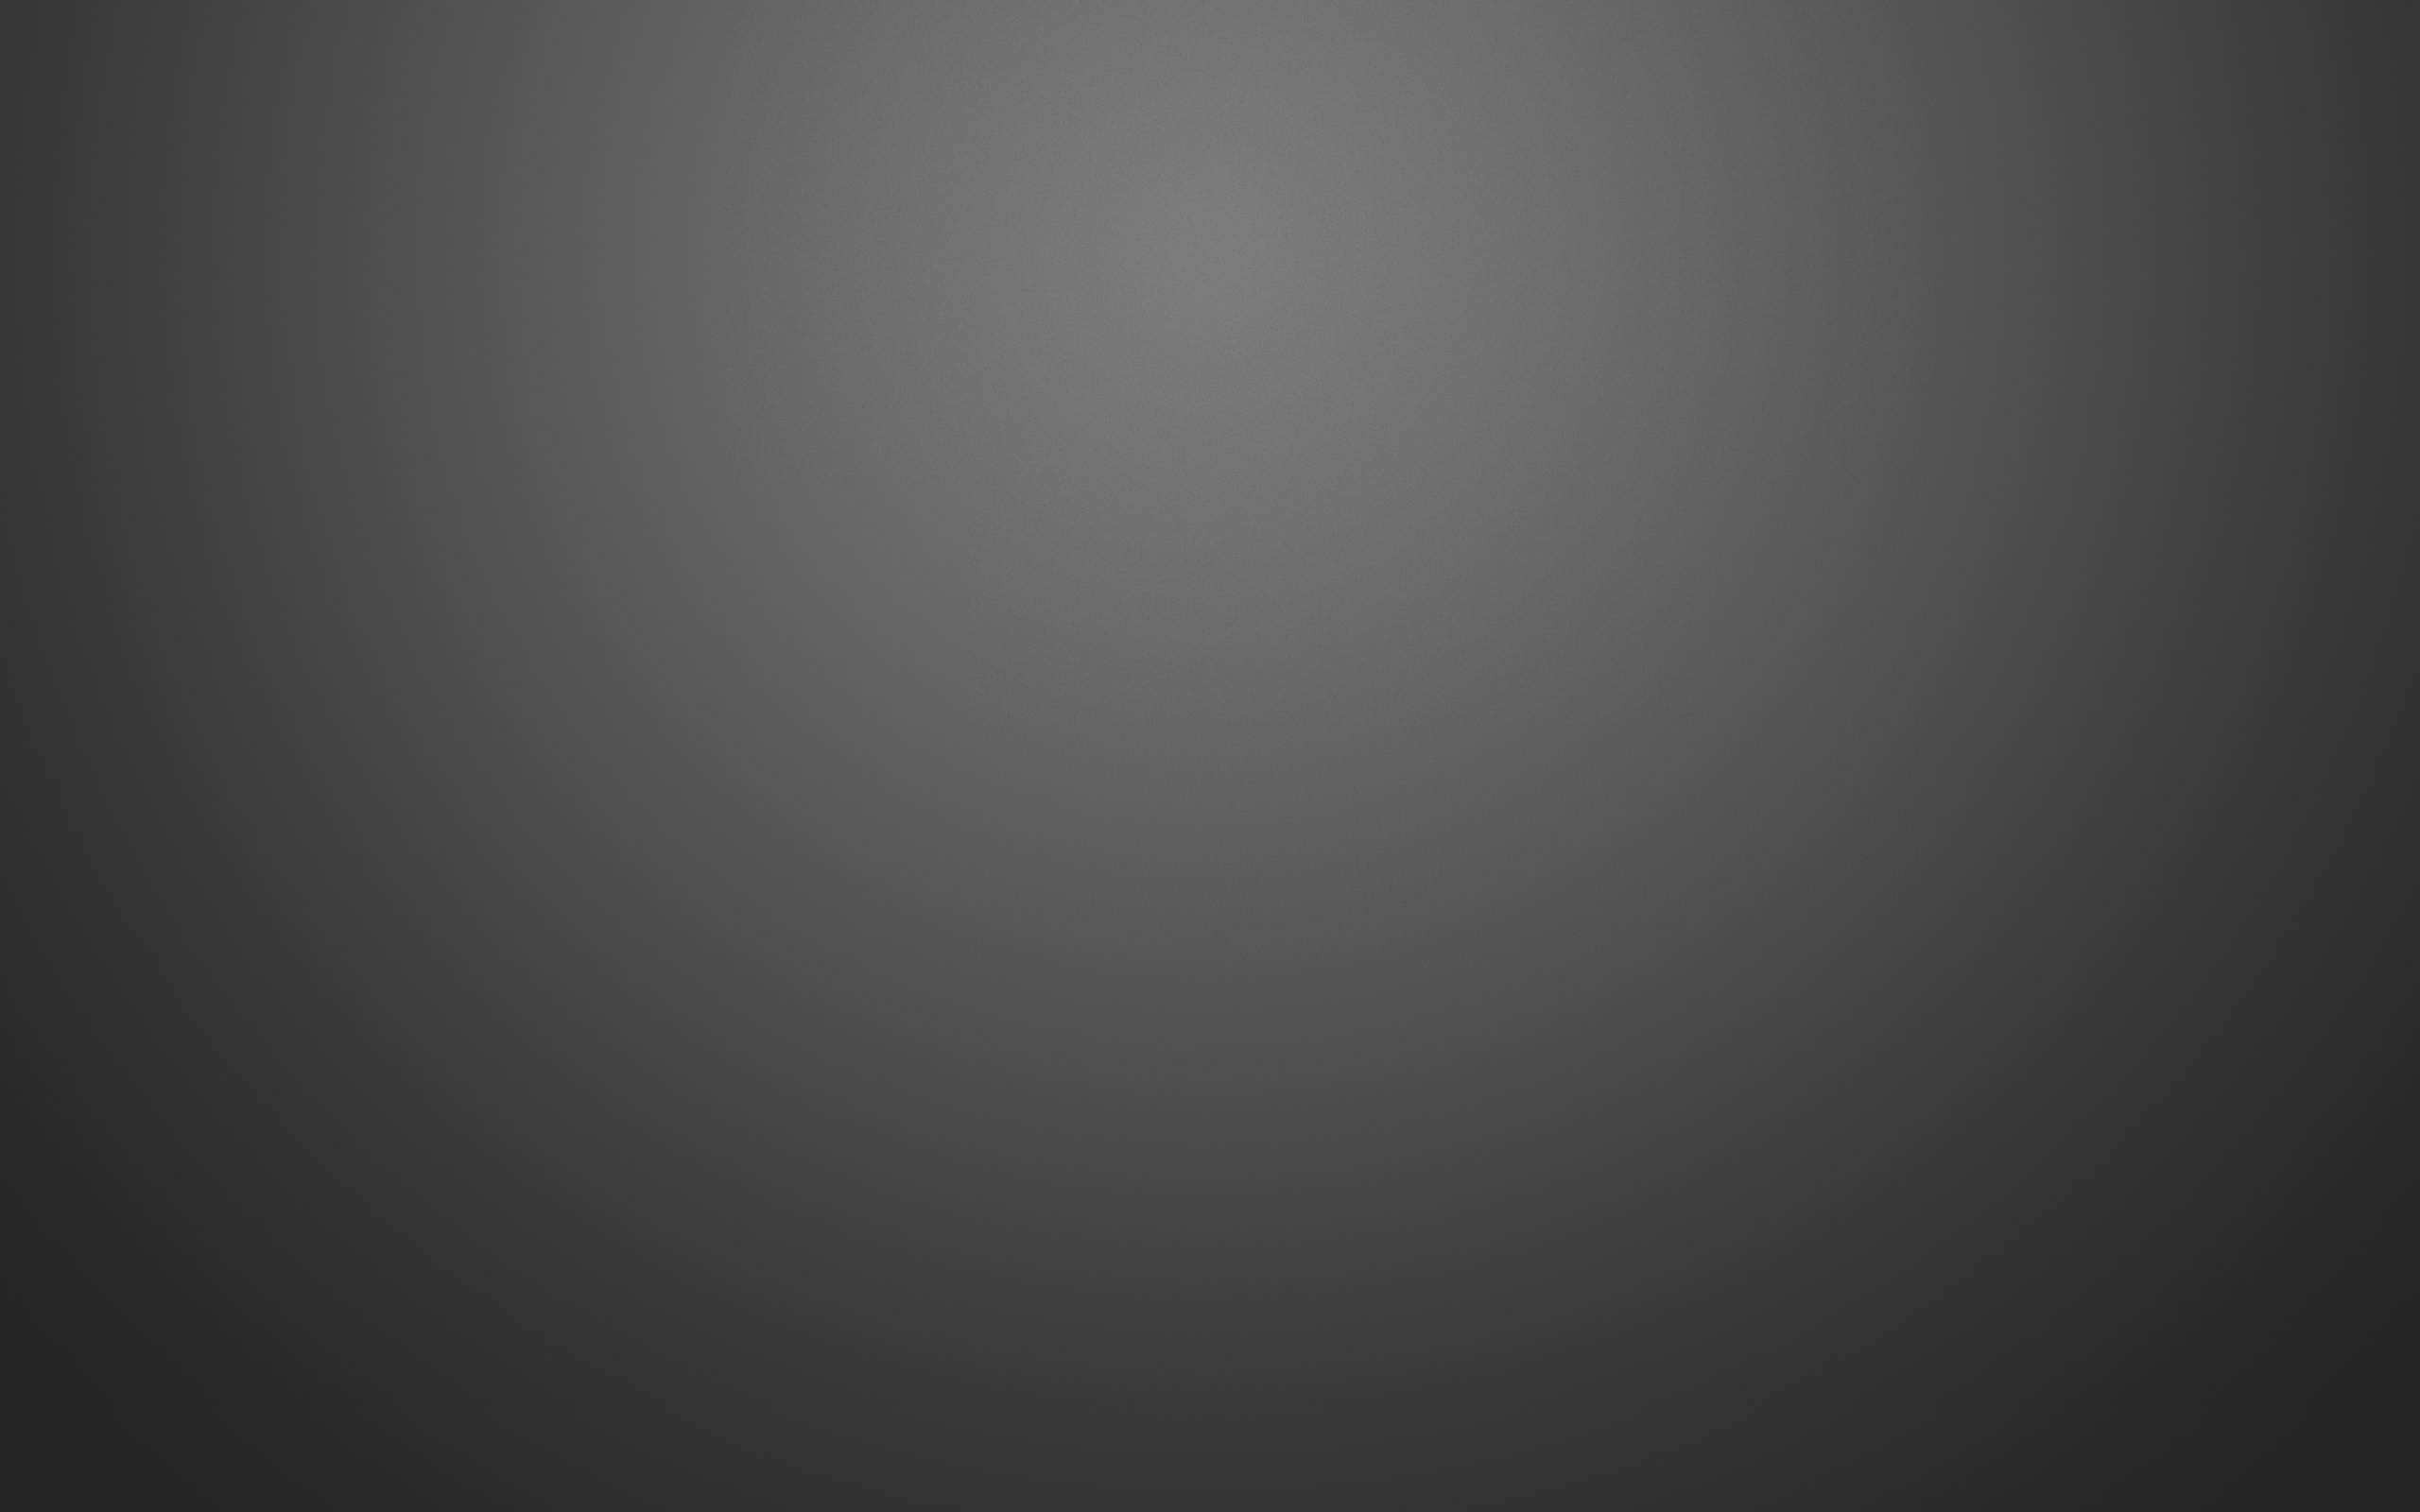 Dark Grey Background Download Free Amazing Backgrounds For